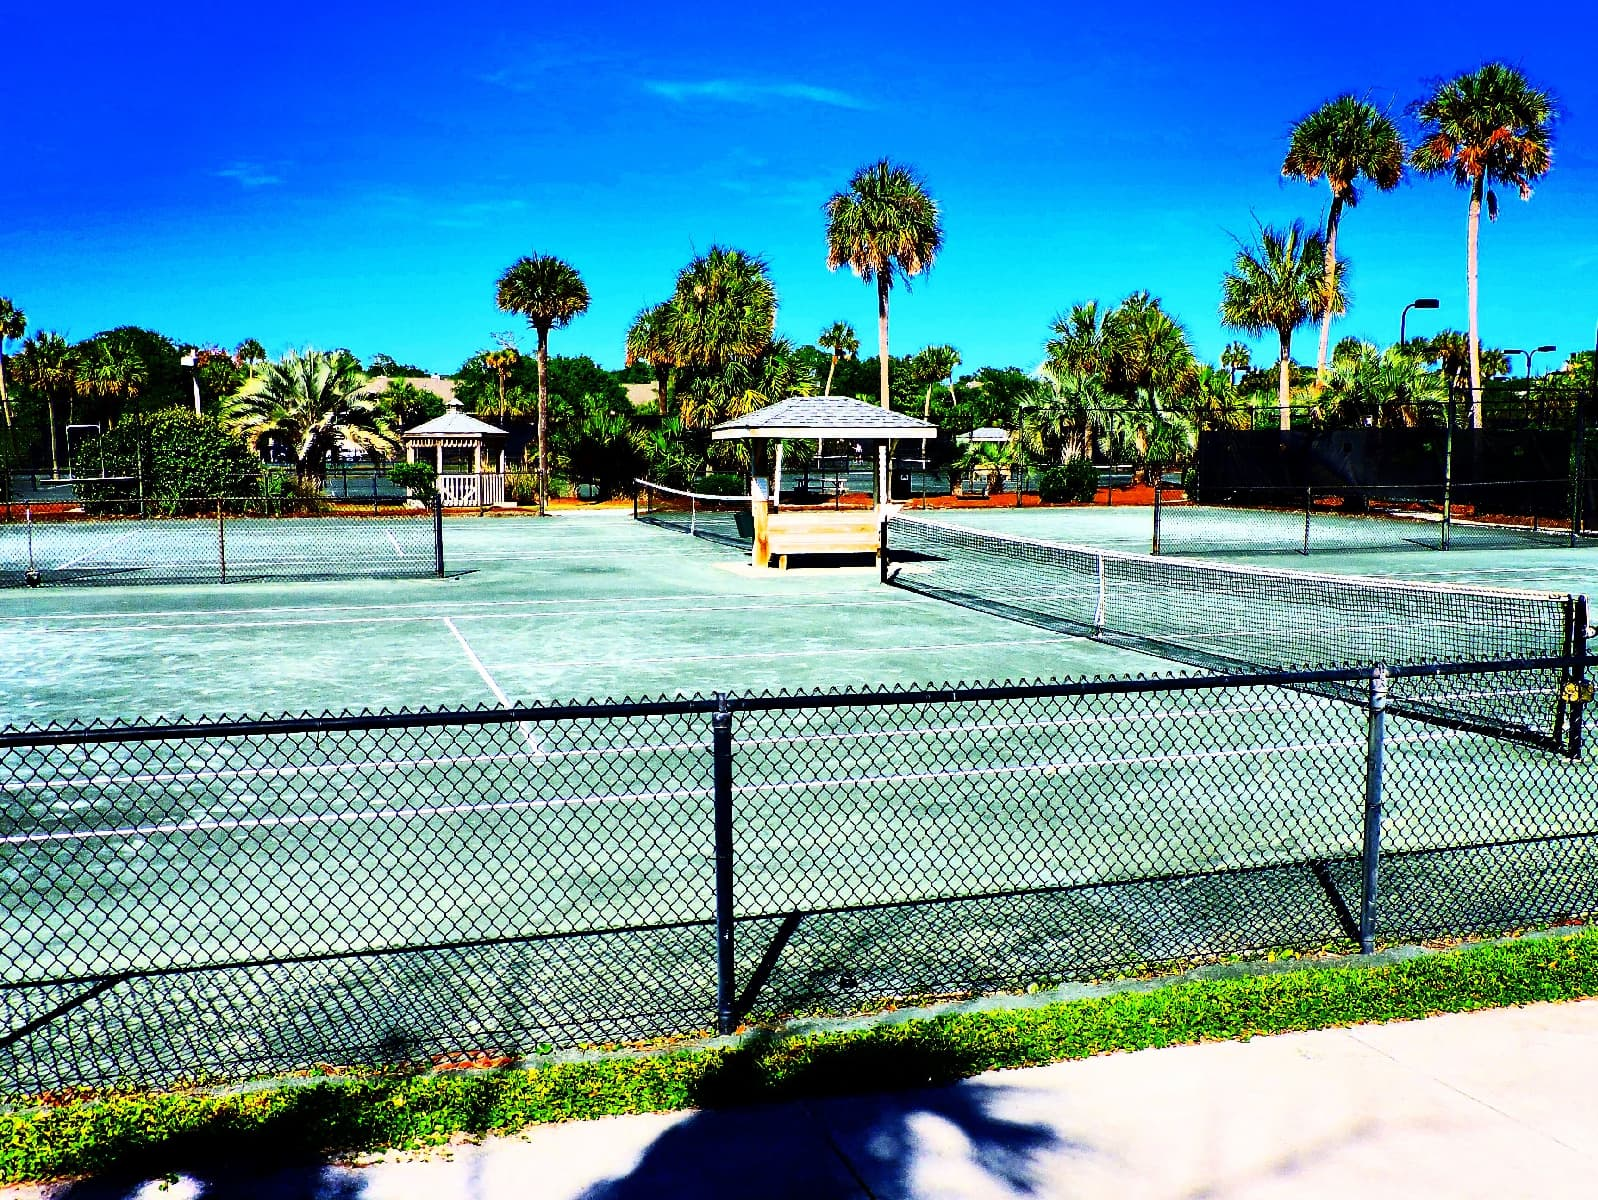 Wild Dunes Resort - one of the best tennis resorts for your tennis holidays in South Carolina